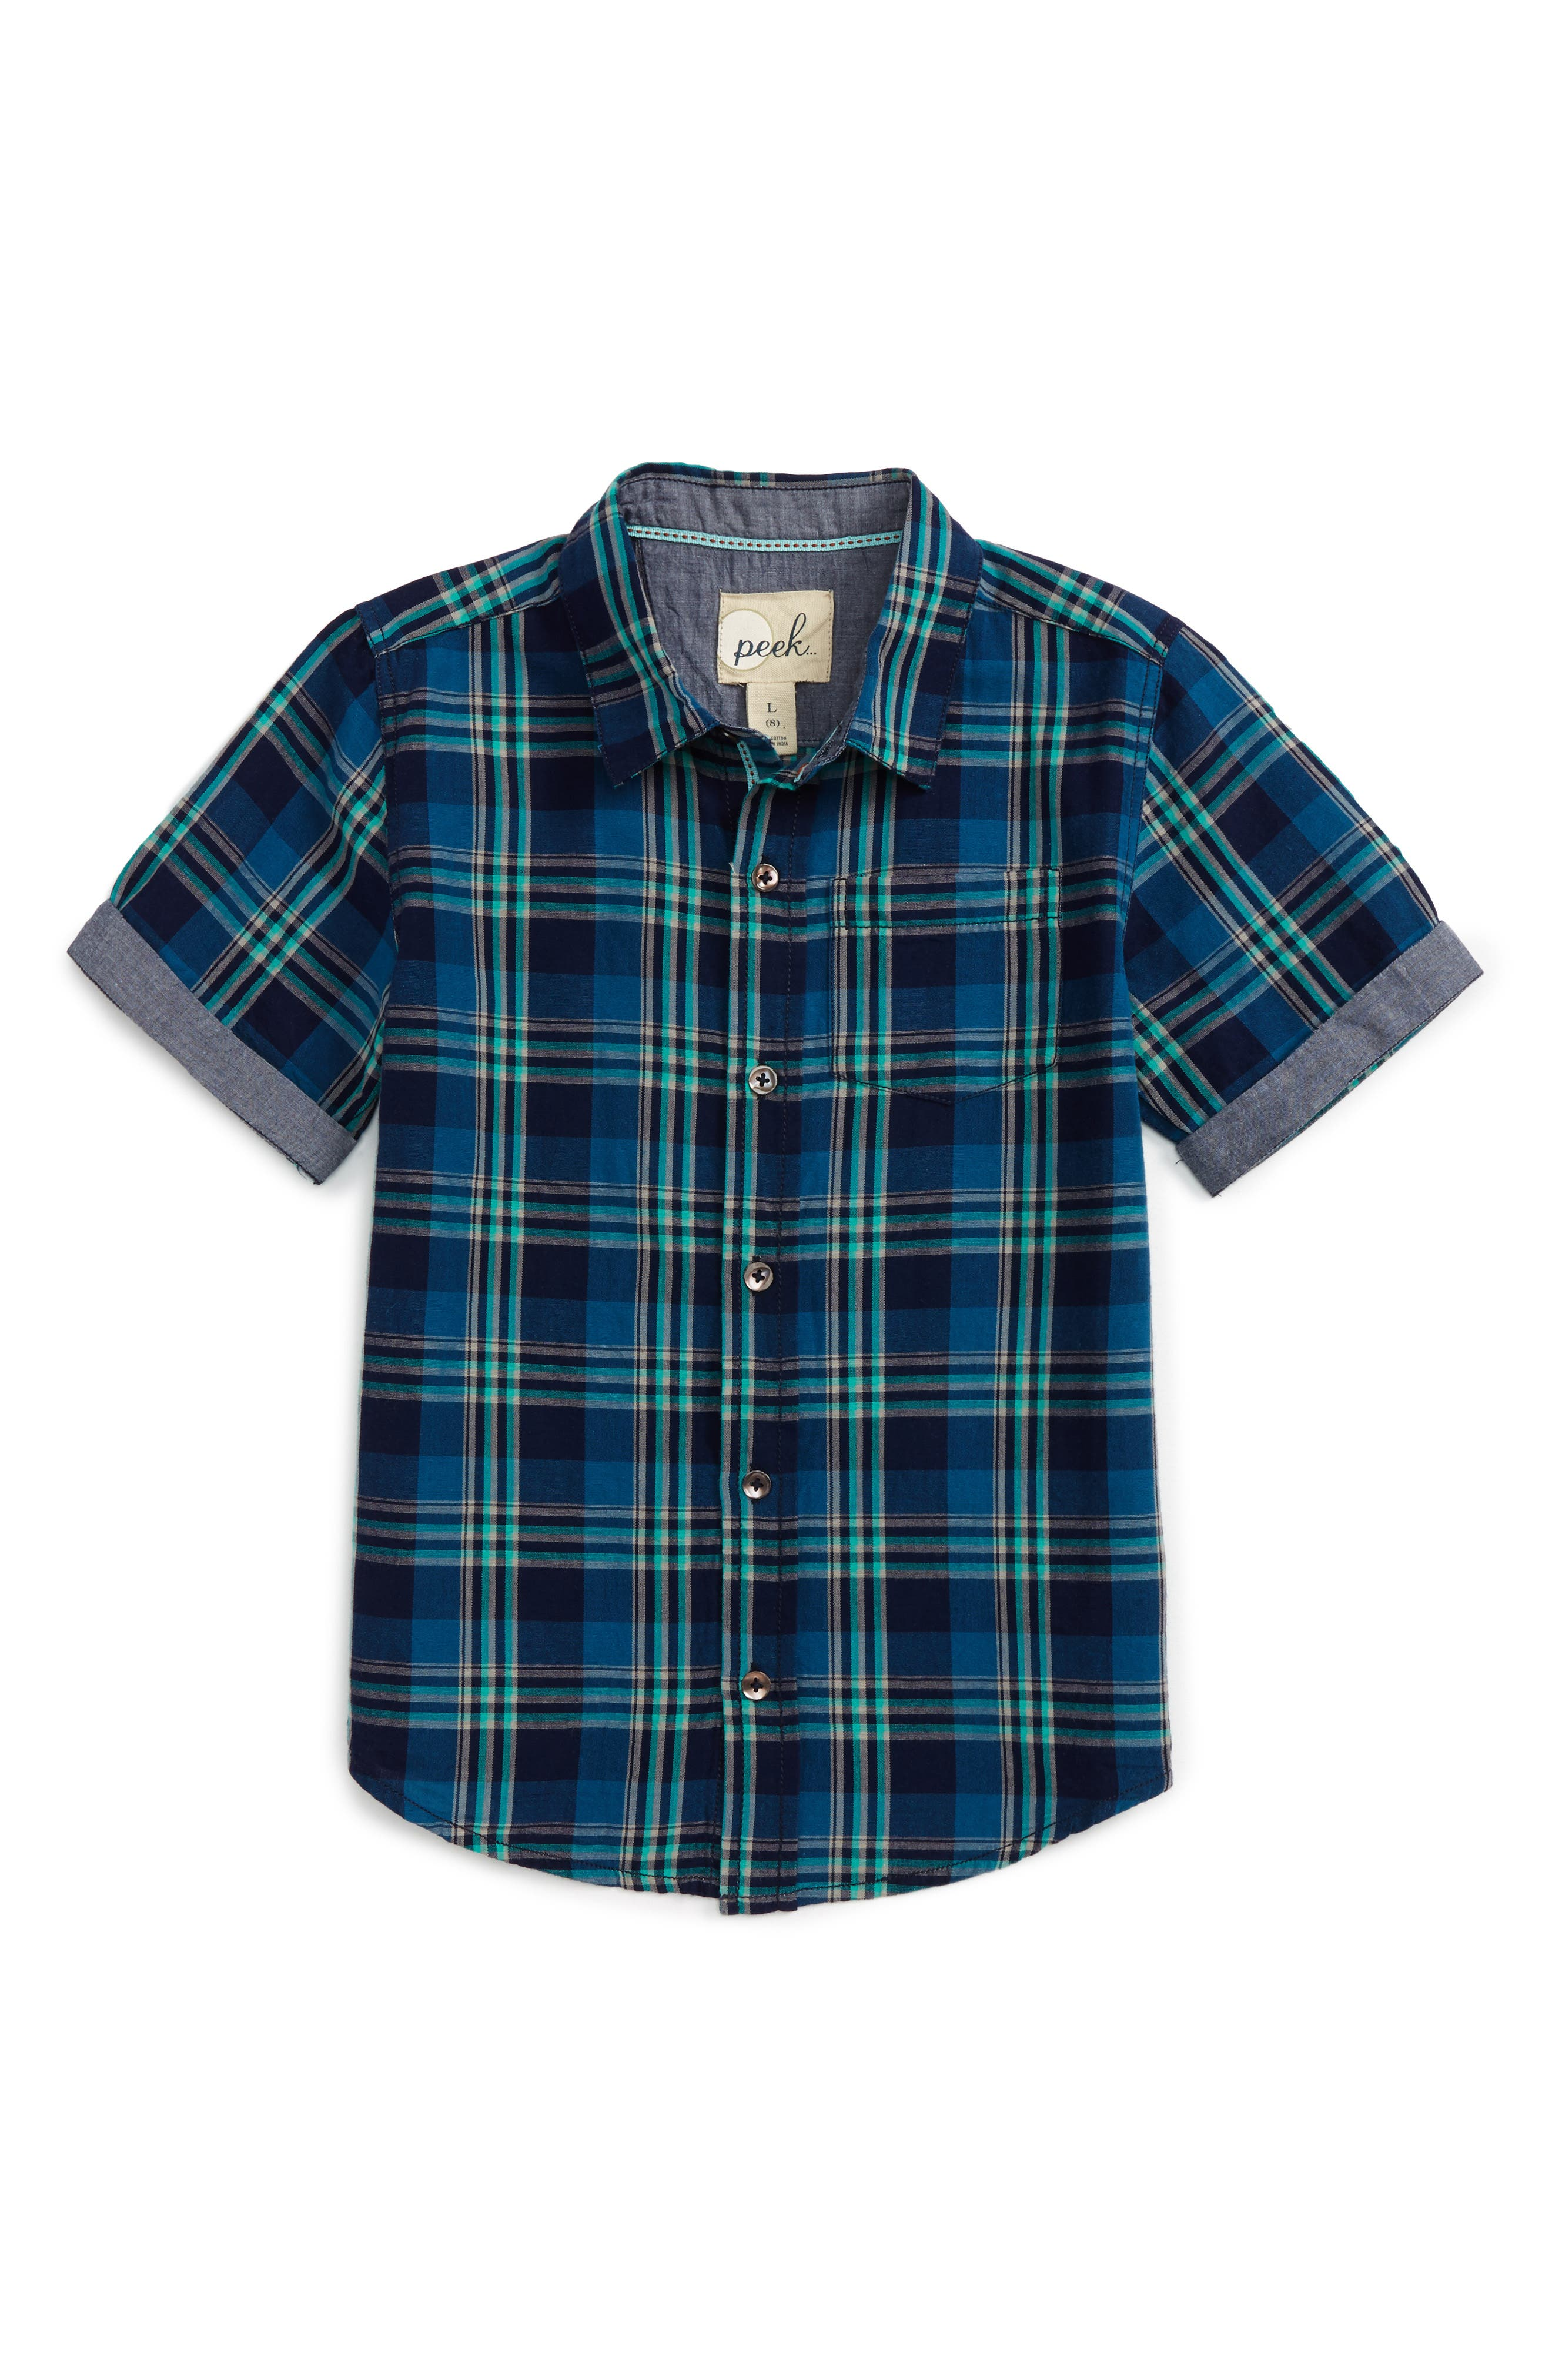 Peek Kyle Plaid Short Sleeve Woven Shirt (Toddler Boys, Little Boys & Big Boys)